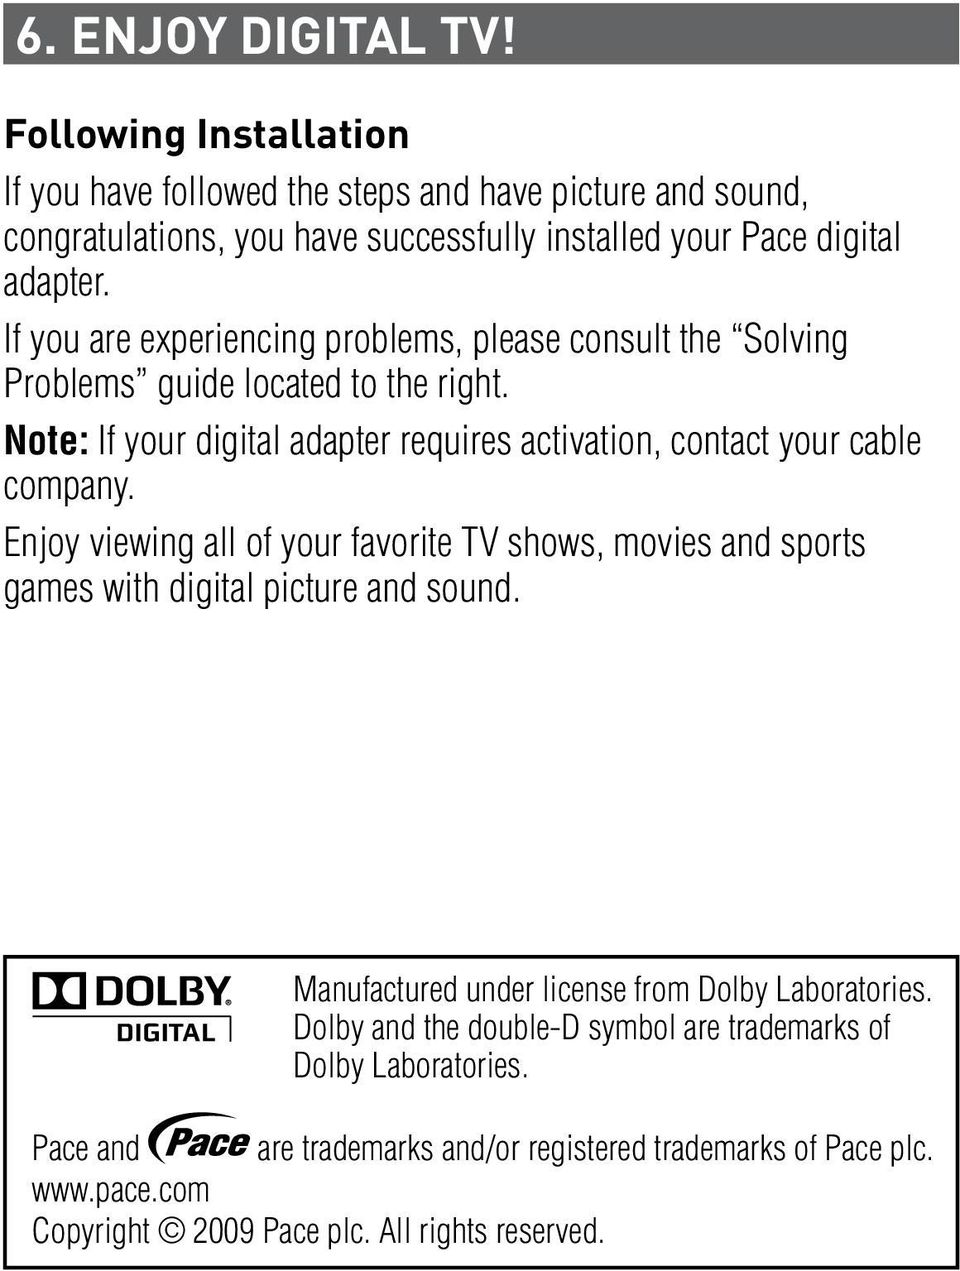 If you are experiencing problems, please consult the Solving Problems guide located to the right. Note: If your digital adapter requires activation, contact your cable company.